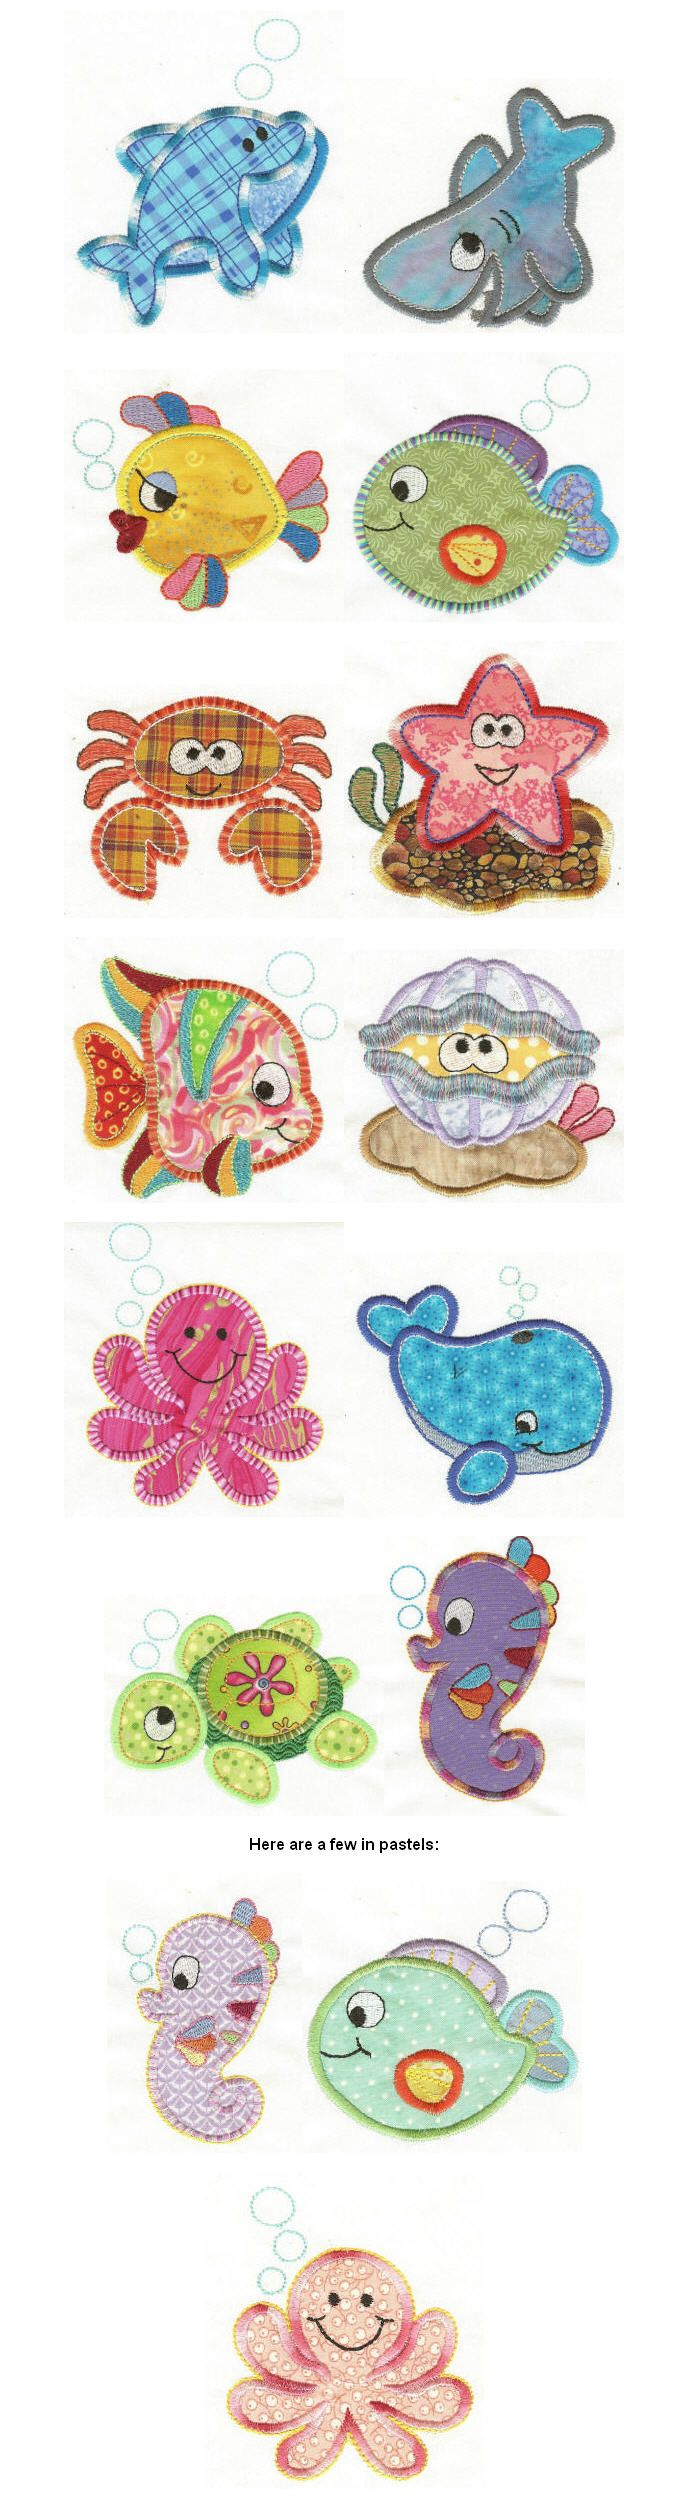 Embroidery Free Machine Embroidery Designs Sea Critters Applique